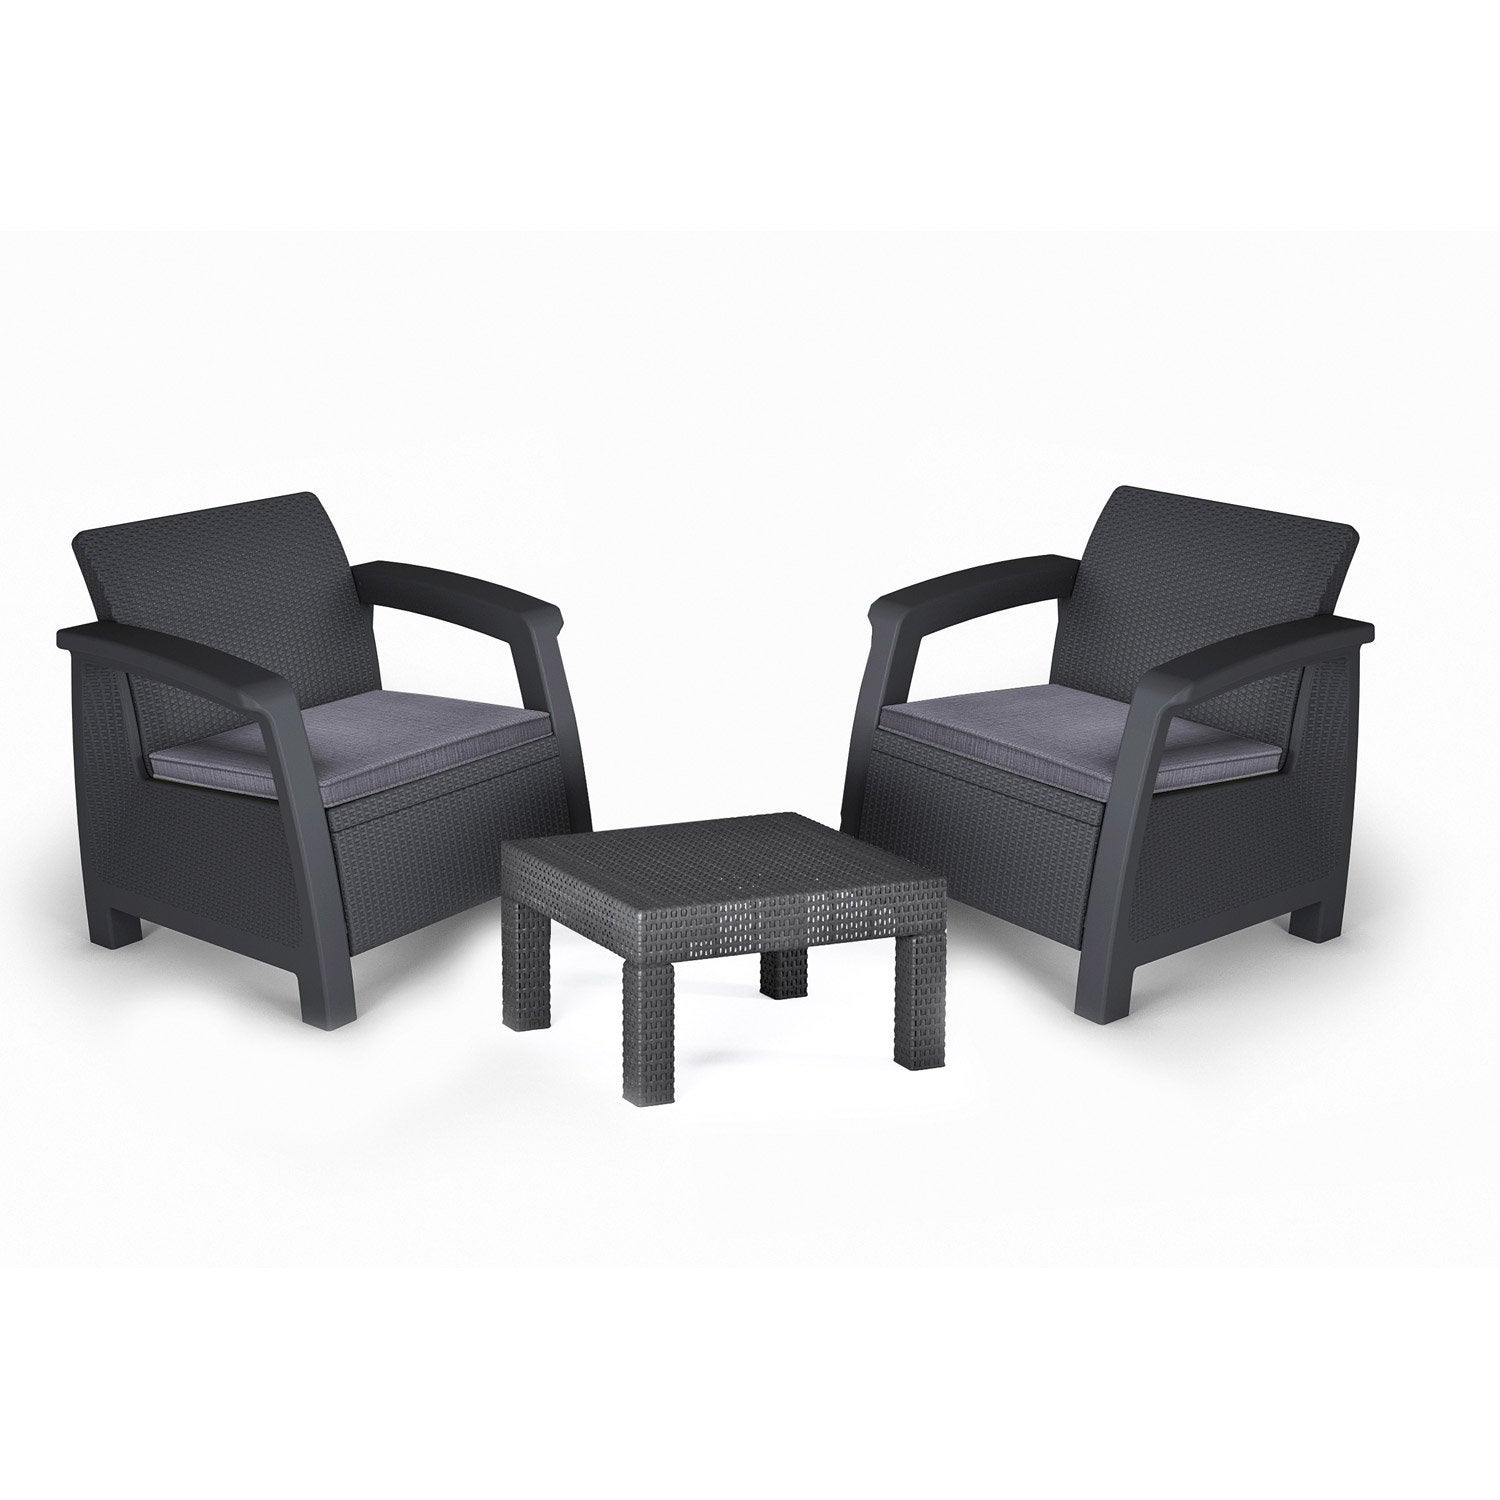 Salon de jardin bahamas r sine inject e anthracite table 2 fauteuils leroy merlin - Table salon de jardin resine tressee ...